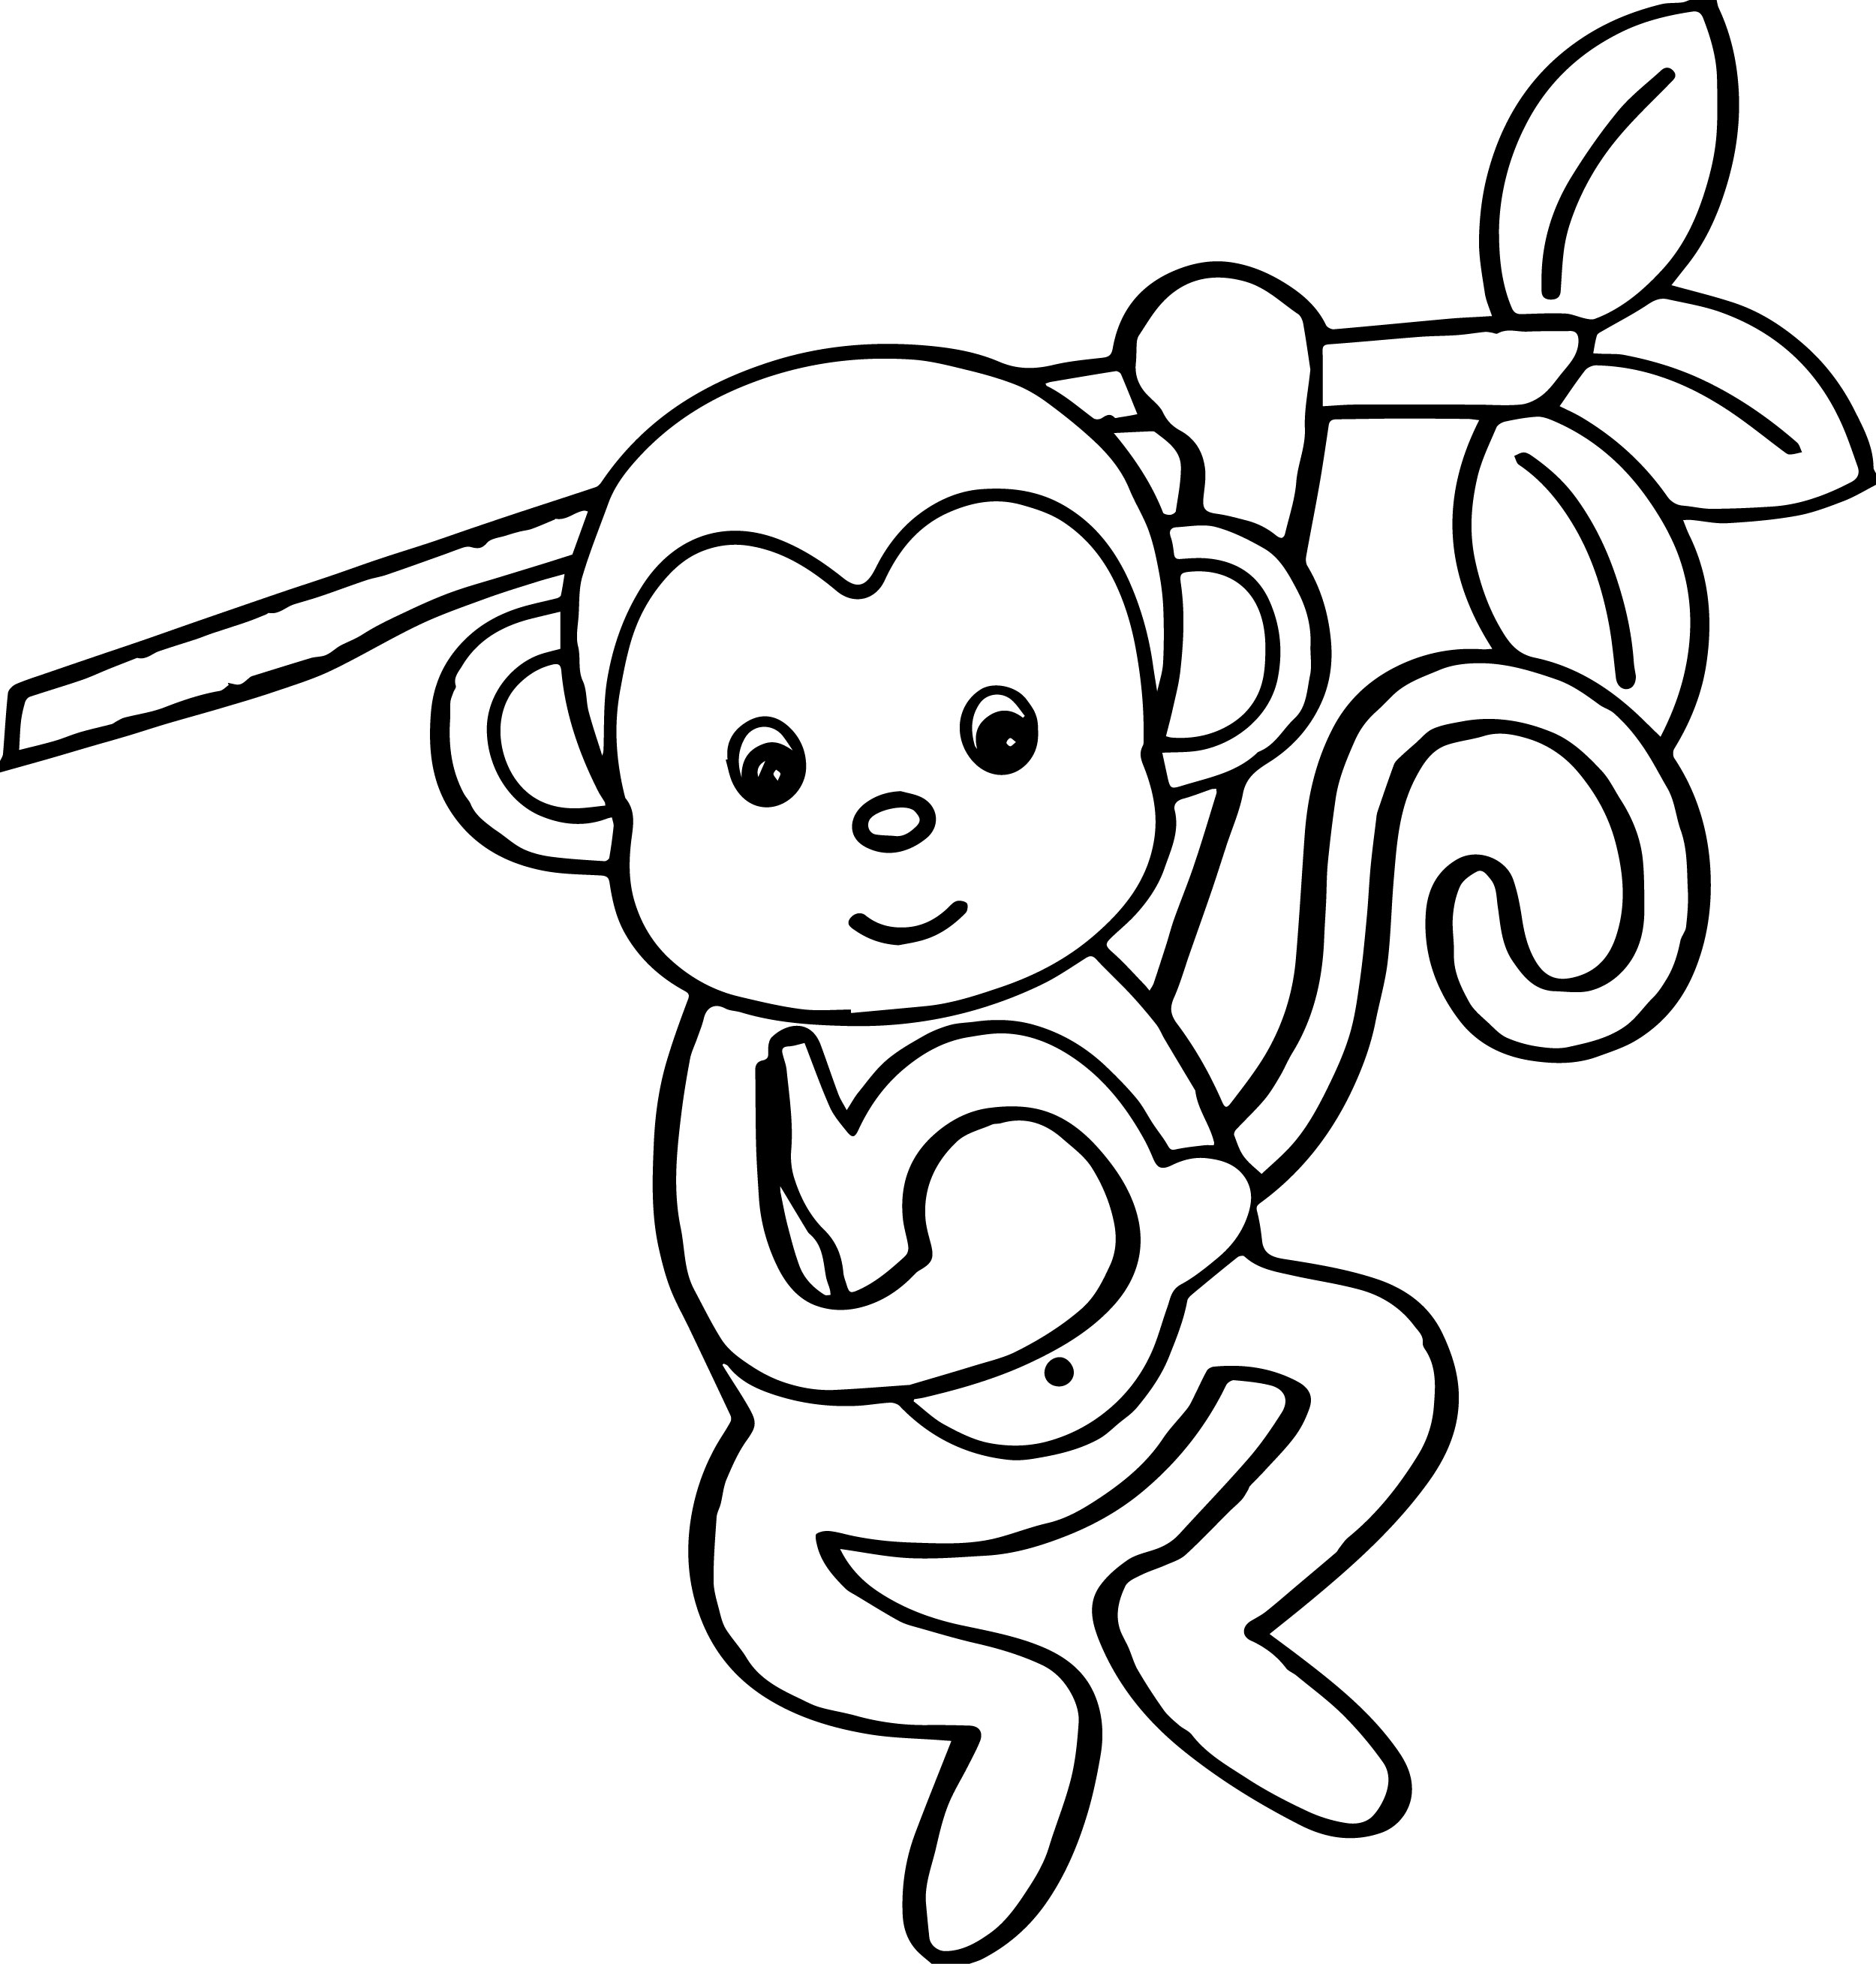 2500x2617 Coloring Pages Cartoon Monkey Coloring Pages Cartoon Monkey